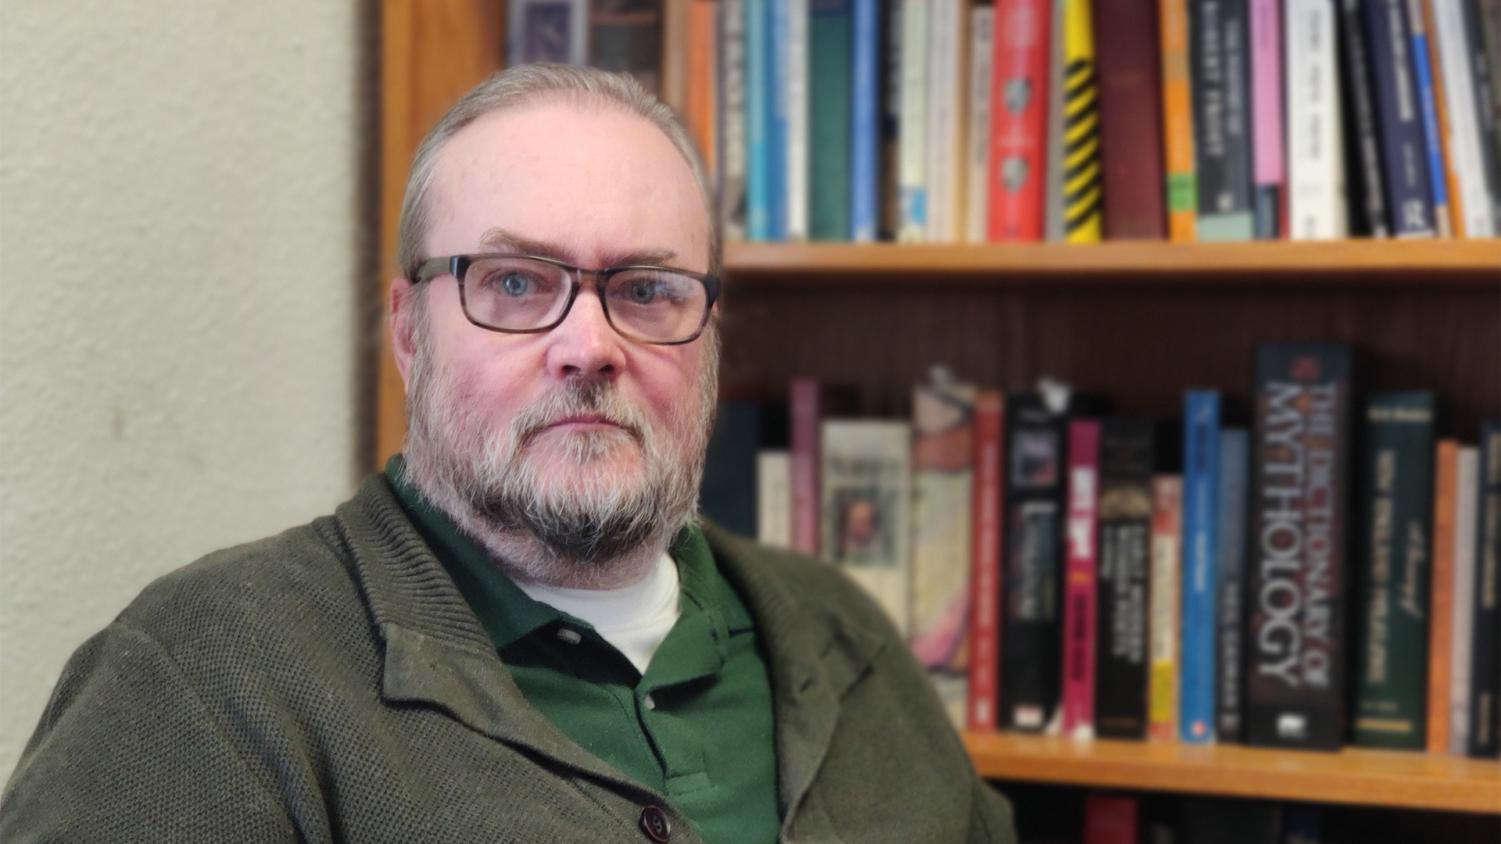 Professor of English Dr. Rob Howard teaches several unique classes based on his favorite books. Those classes include in-depth analysis on J.R.R. Tolkein's